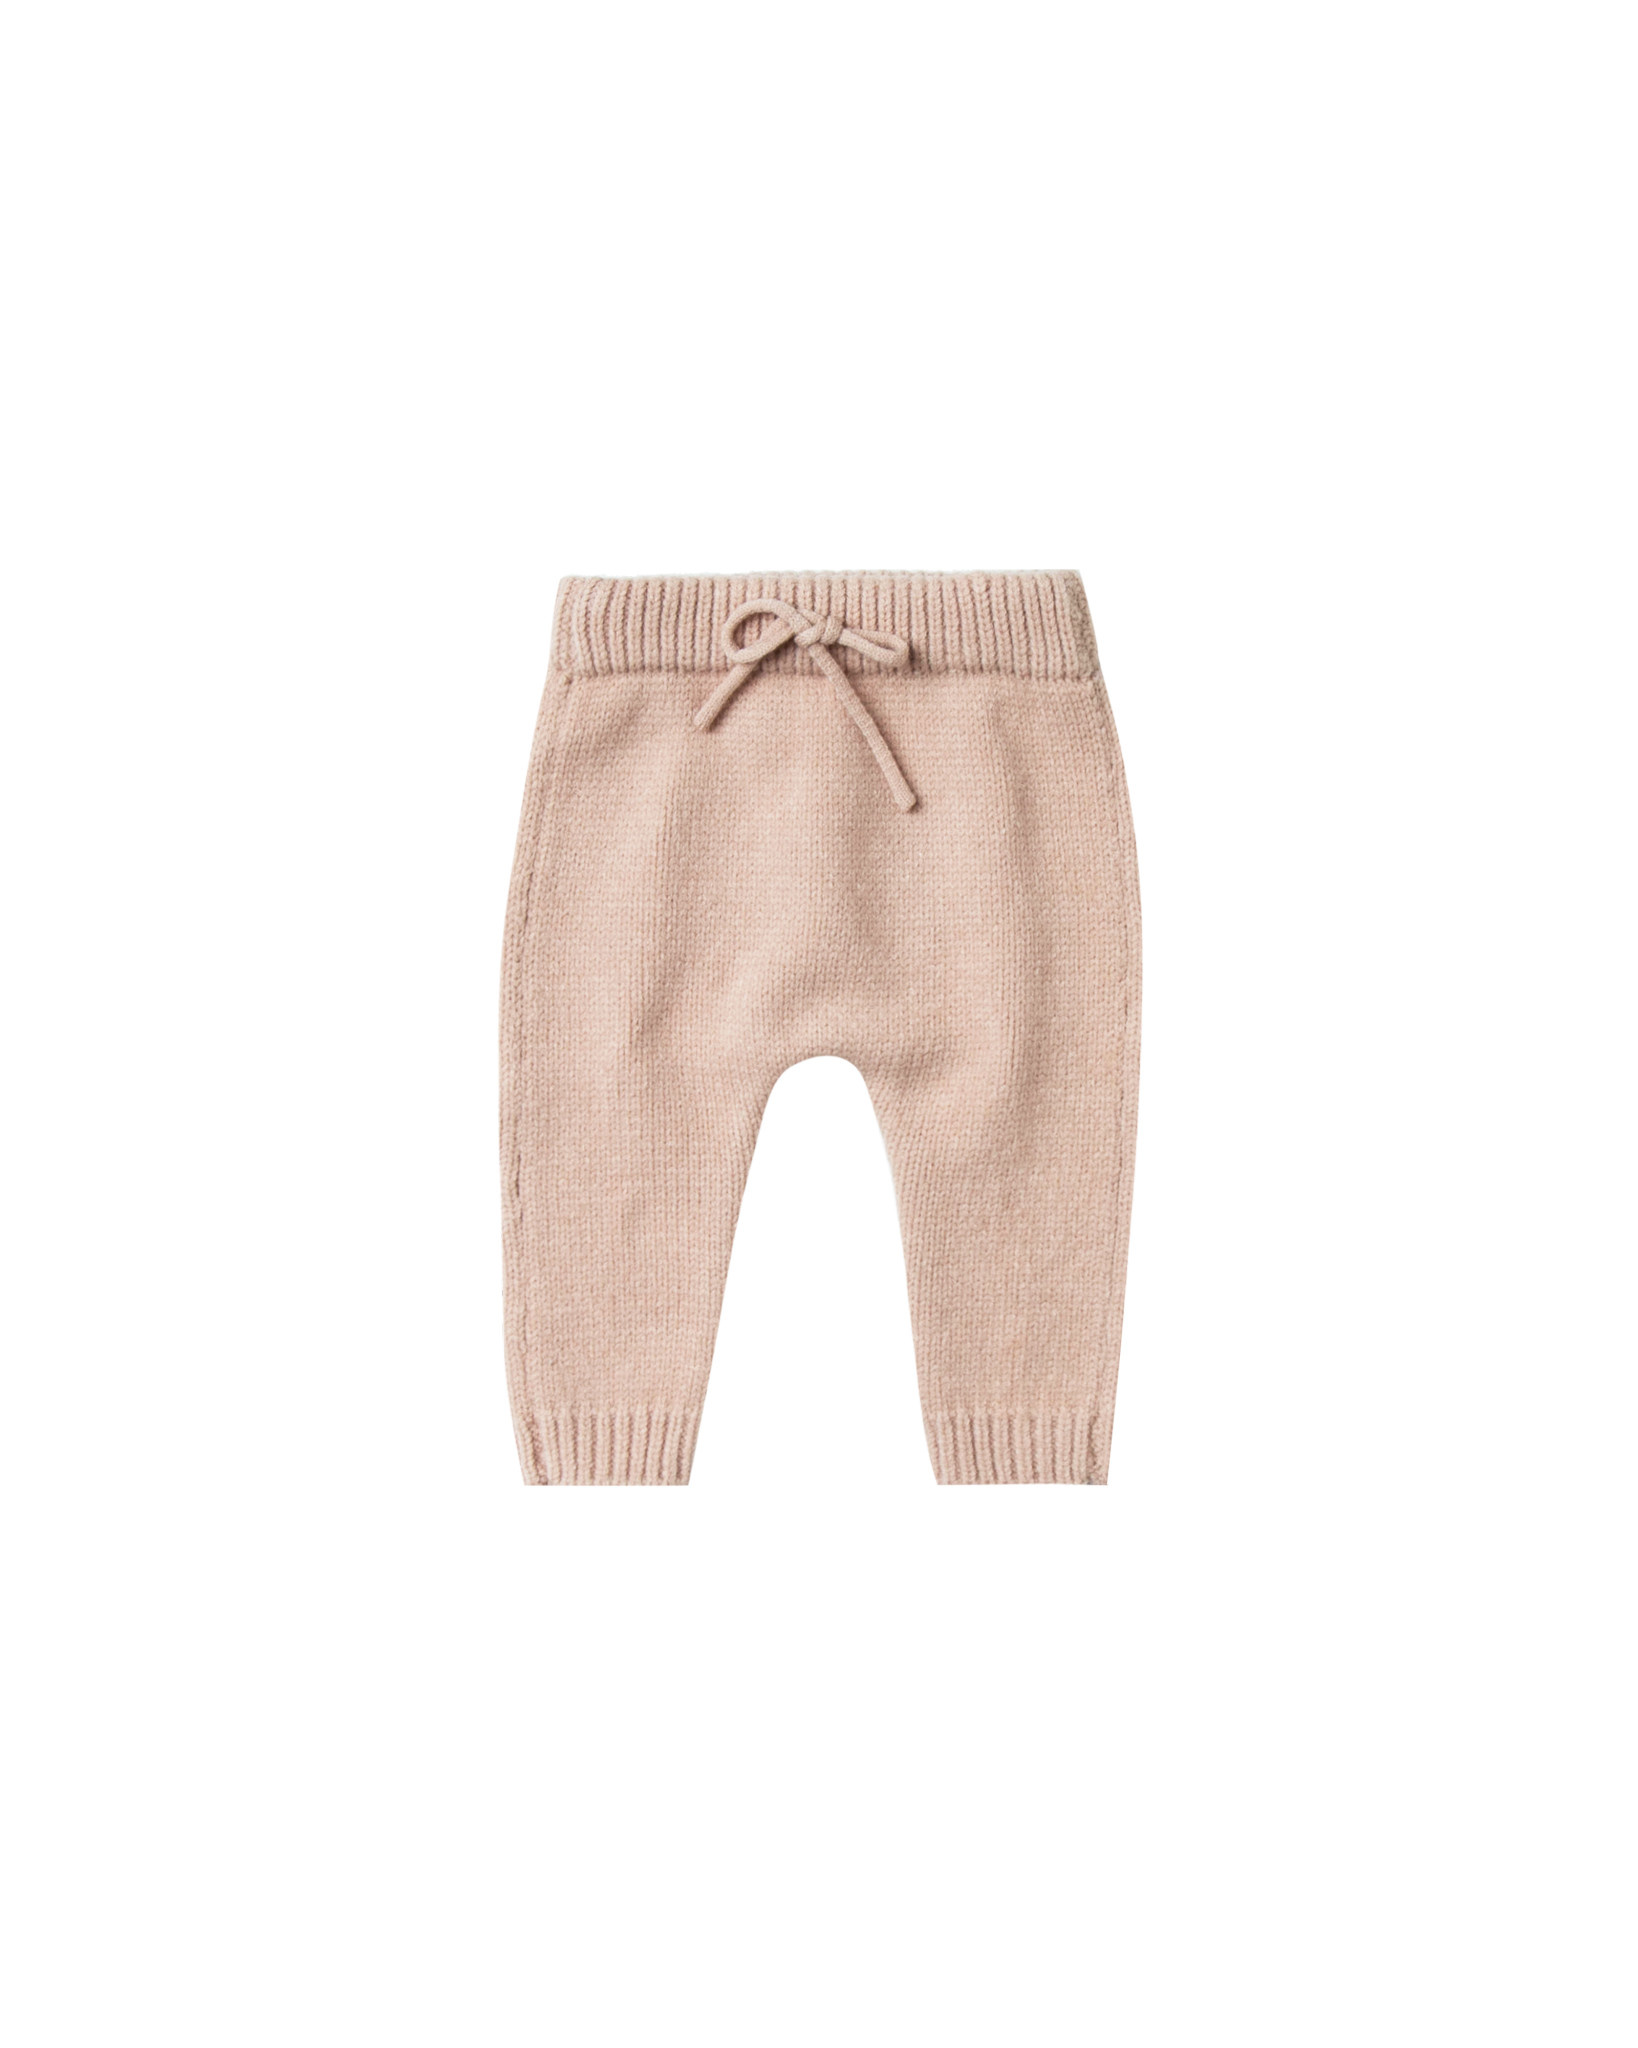 RYLEE AND CRU Gable Baby Pant